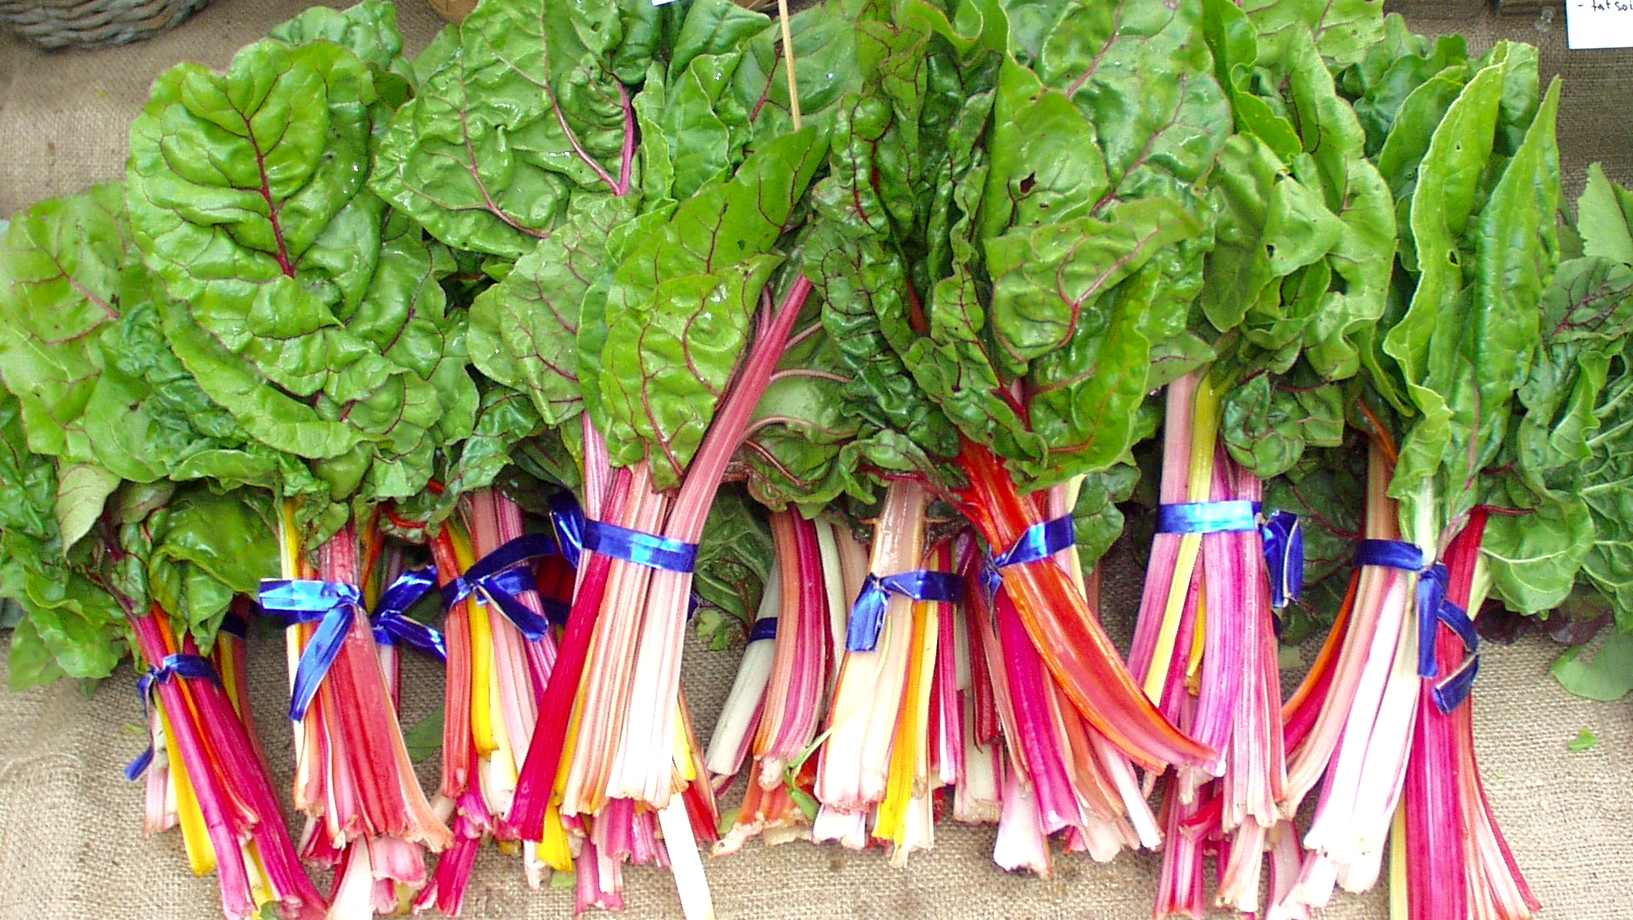 Rainbow Chard from Local Roots. Photo copyright 2009 by Zachary D. Lyons.